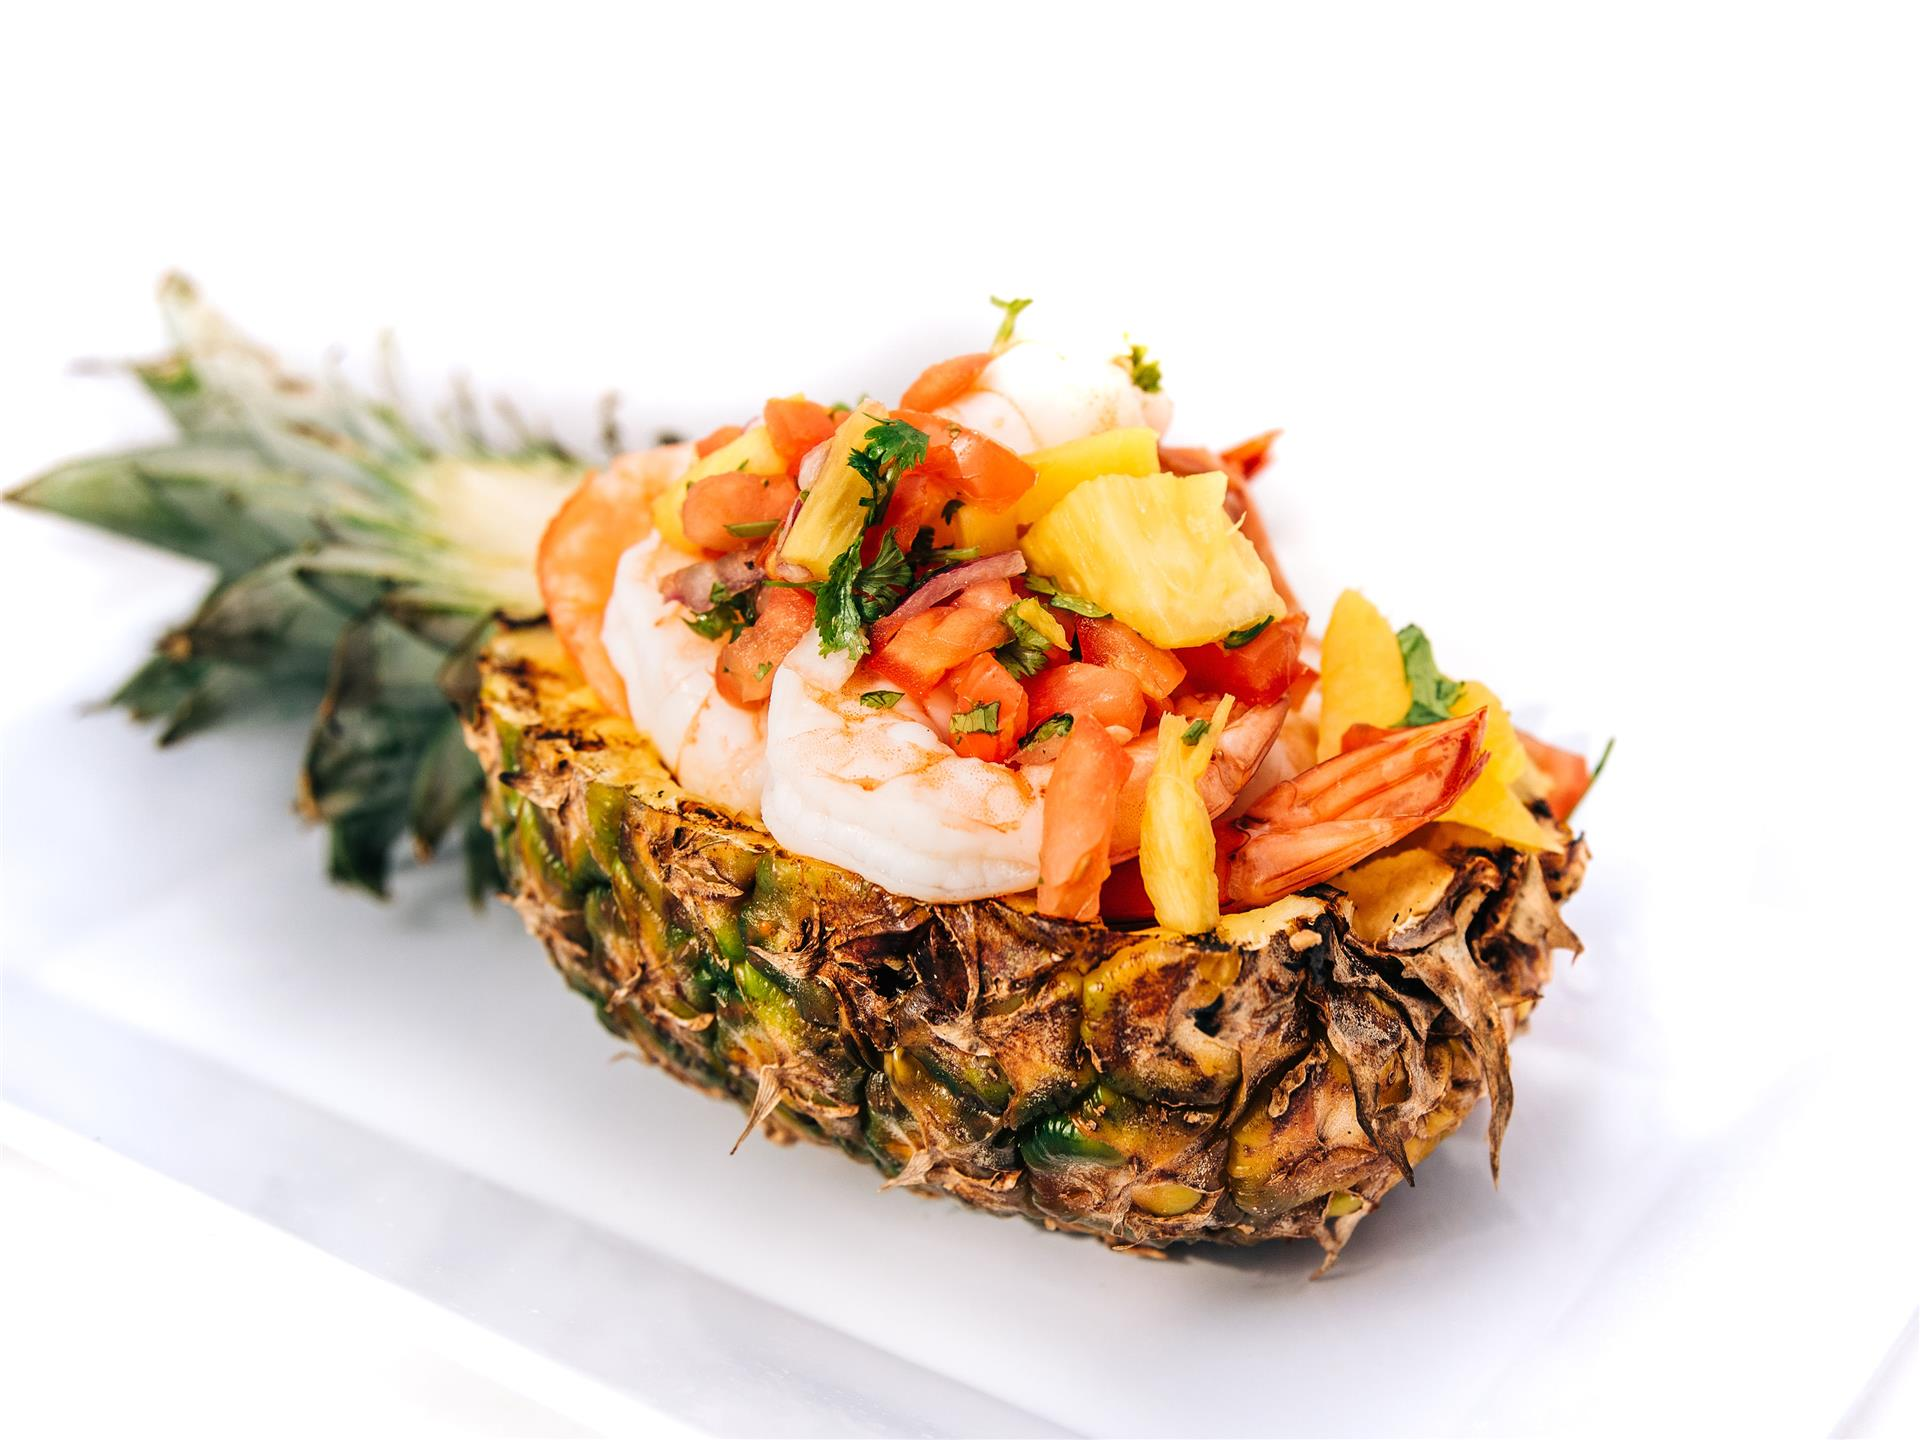 Shrimp served in a pineapple bowl